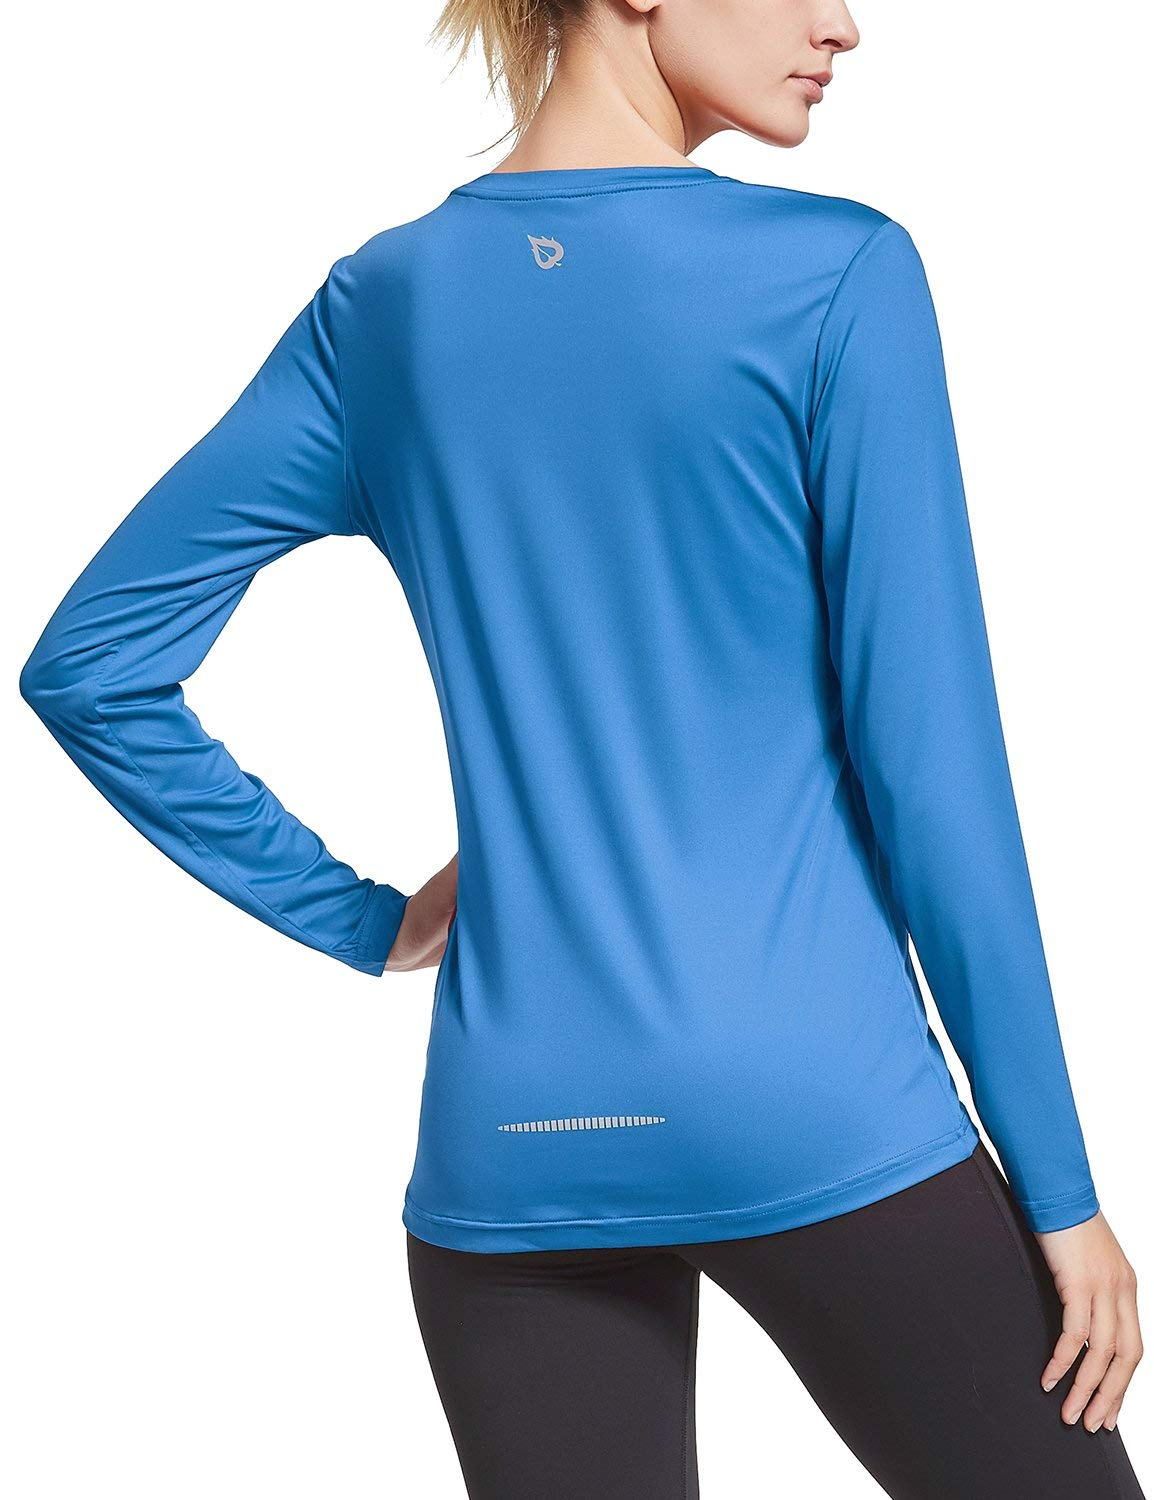 BALEAF Women's Long Sleeve T-Shirt Quick Dry Running Workout Shirts Royal Blue Size L by BALEAF